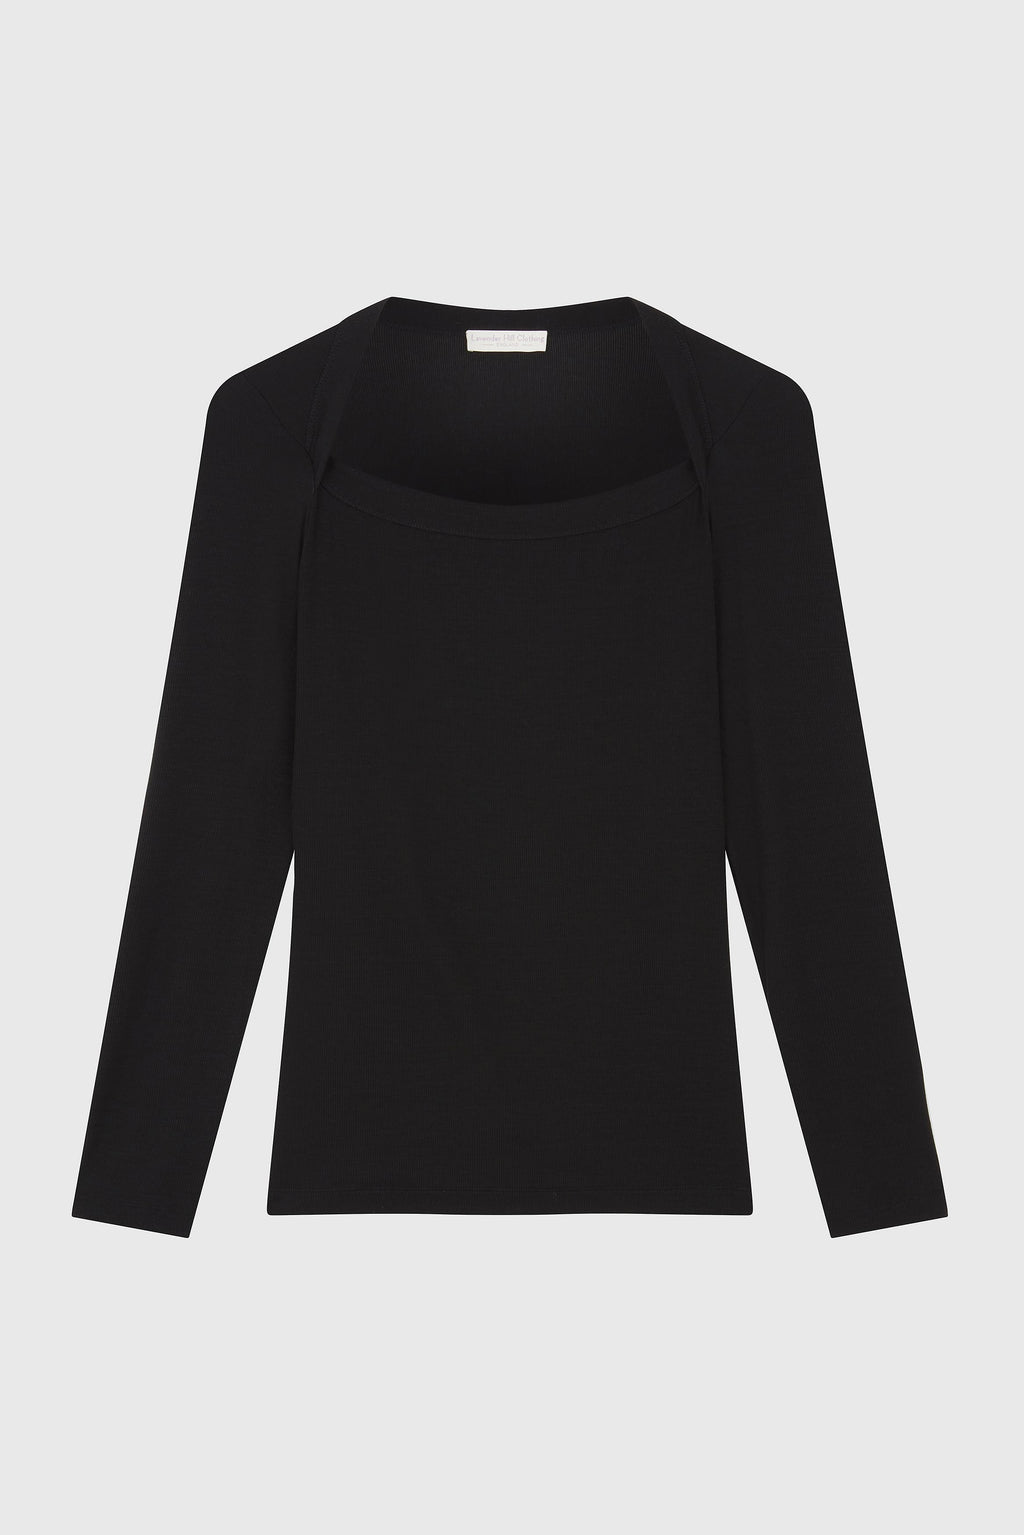 Ribbed Square Neck Tencel Lyocell Top Long Sleeve T-shirt - Black Square Neck T-Shirt - Black Ribbed Long Sleeve T-Shirt- Sustainable Lavender Hill Clothing